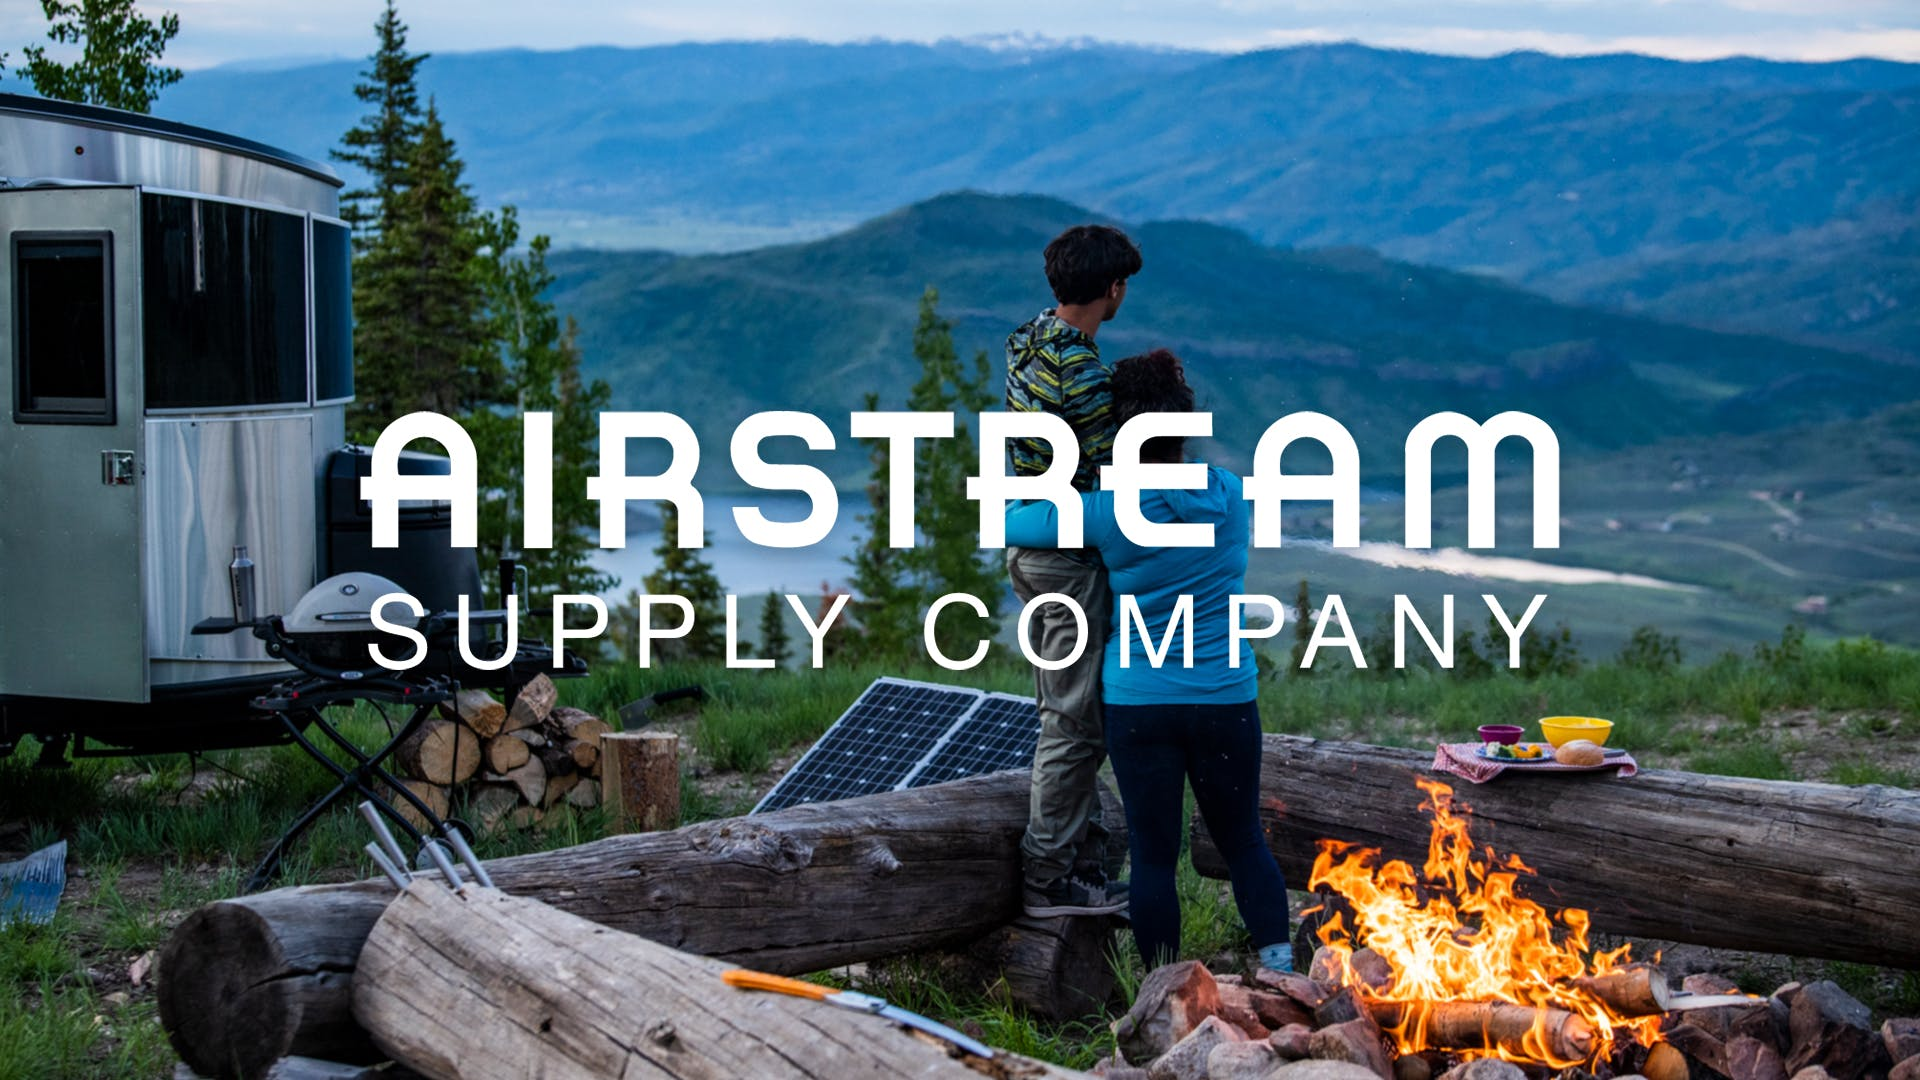 Airstream-Supply-Company-and-Leave-it-Beautiful